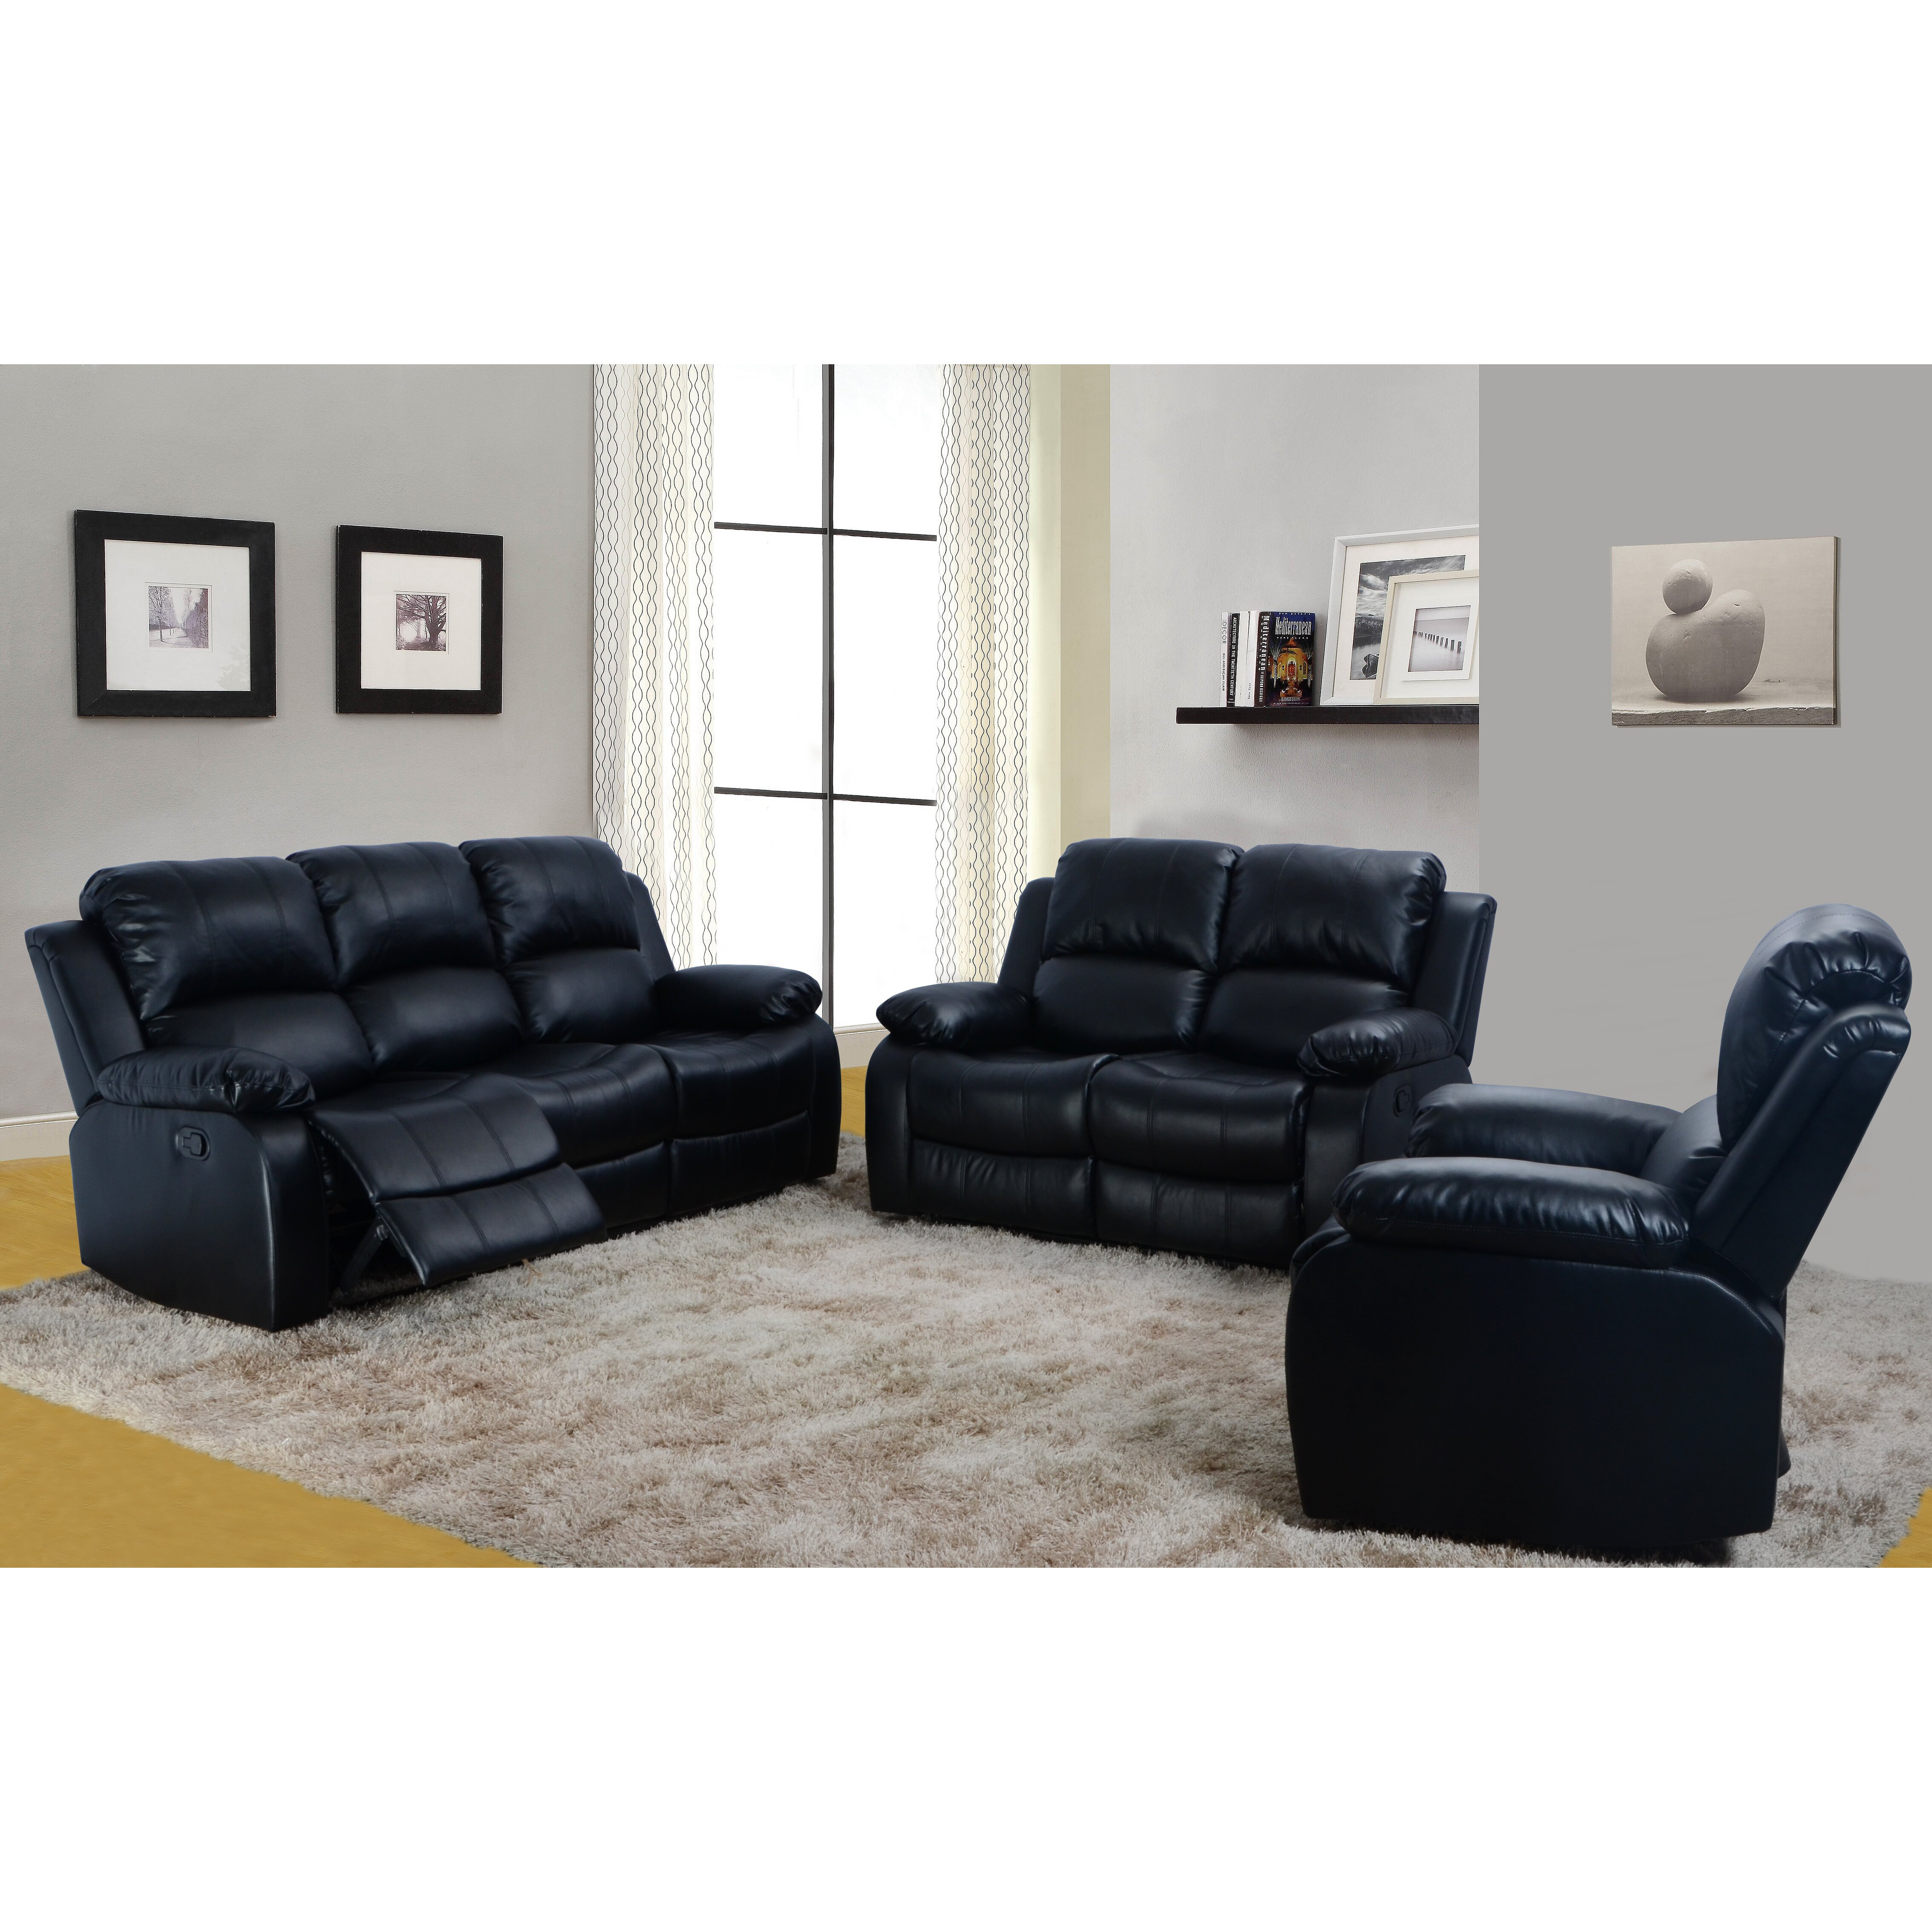 furniture denver 3 piece bonded leather reclining living room sofa set